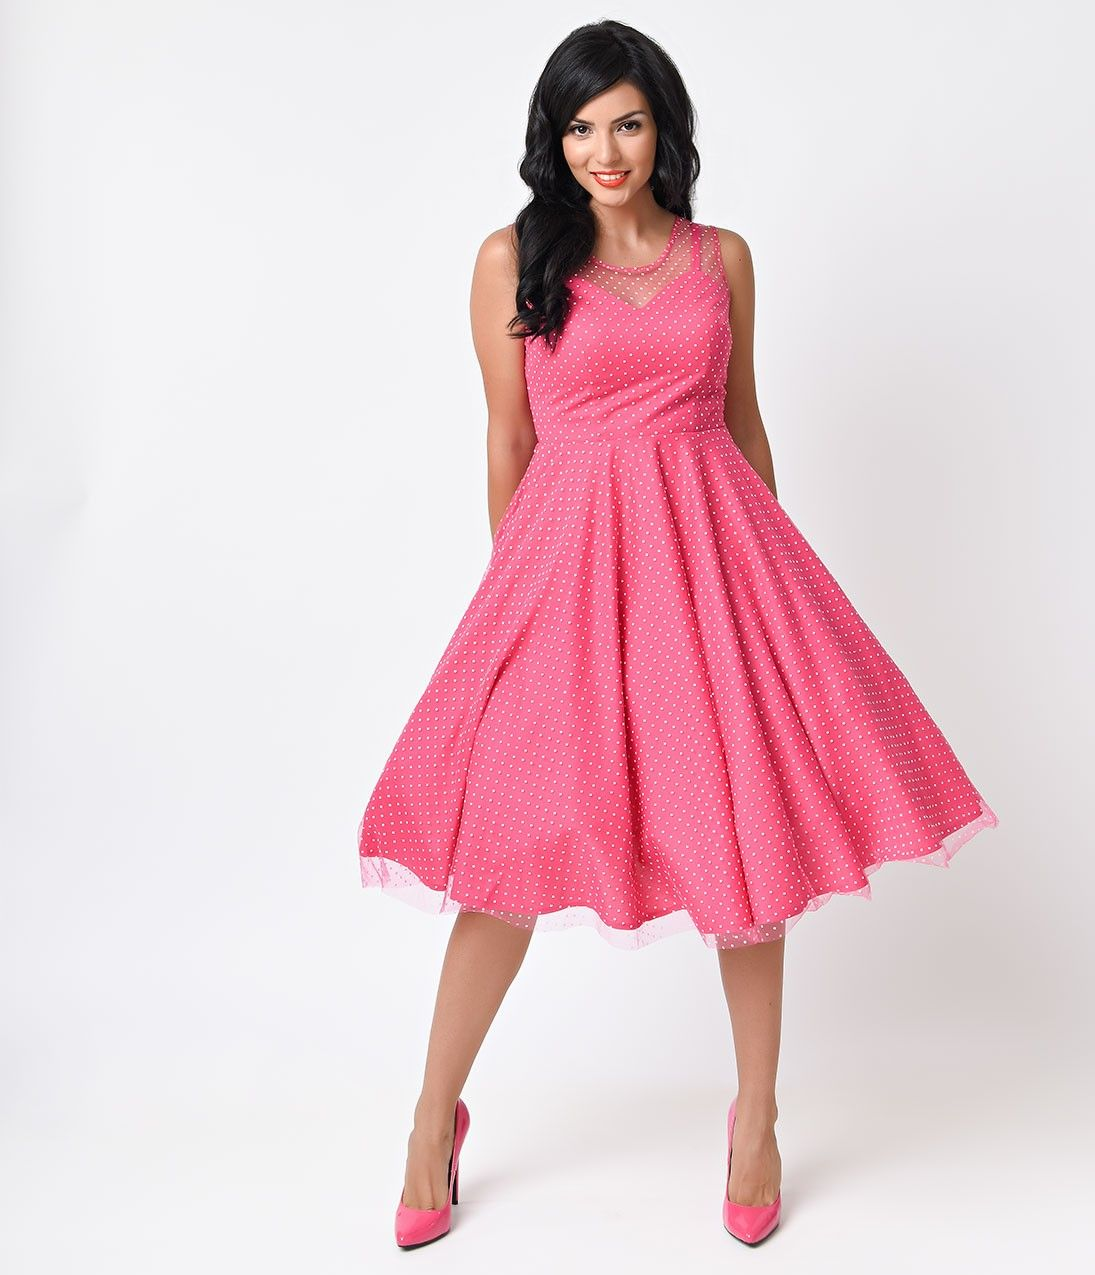 Unique Vintage 1950s Hot Pink Polka Dot High Society Swing Dress ...